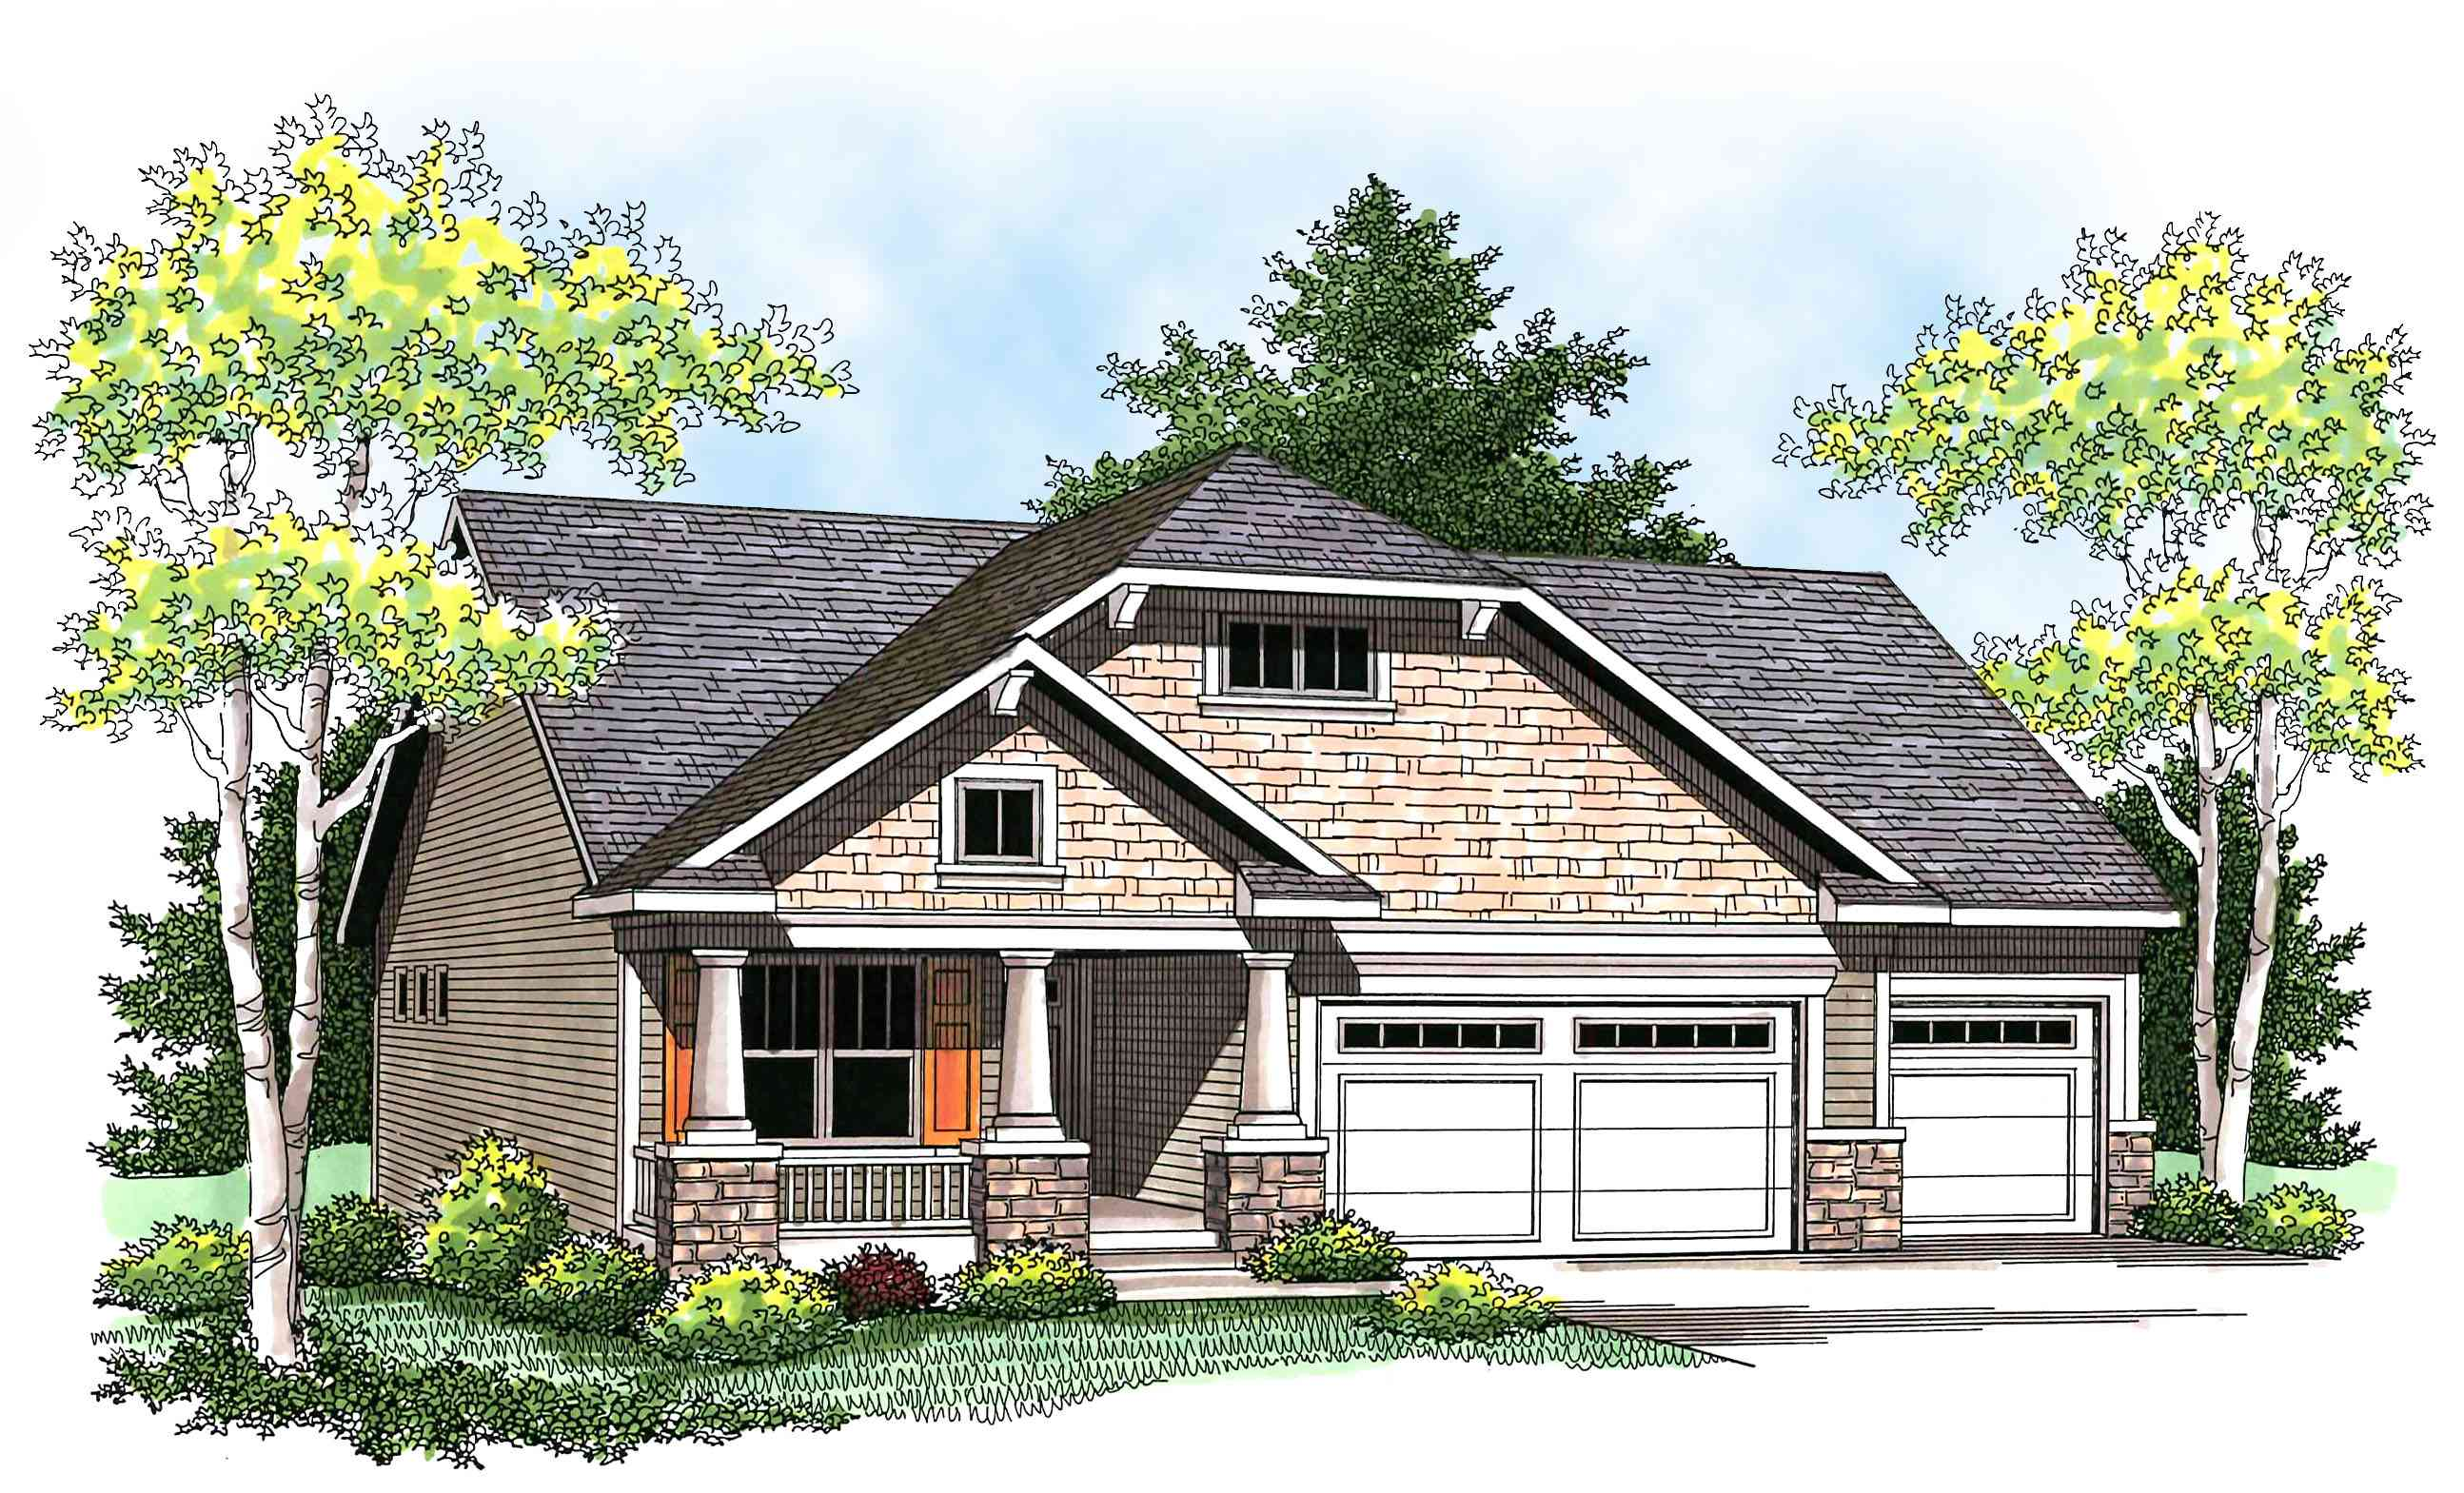 Flexible charming craftsman house plan 89667ah for Flexible house plans